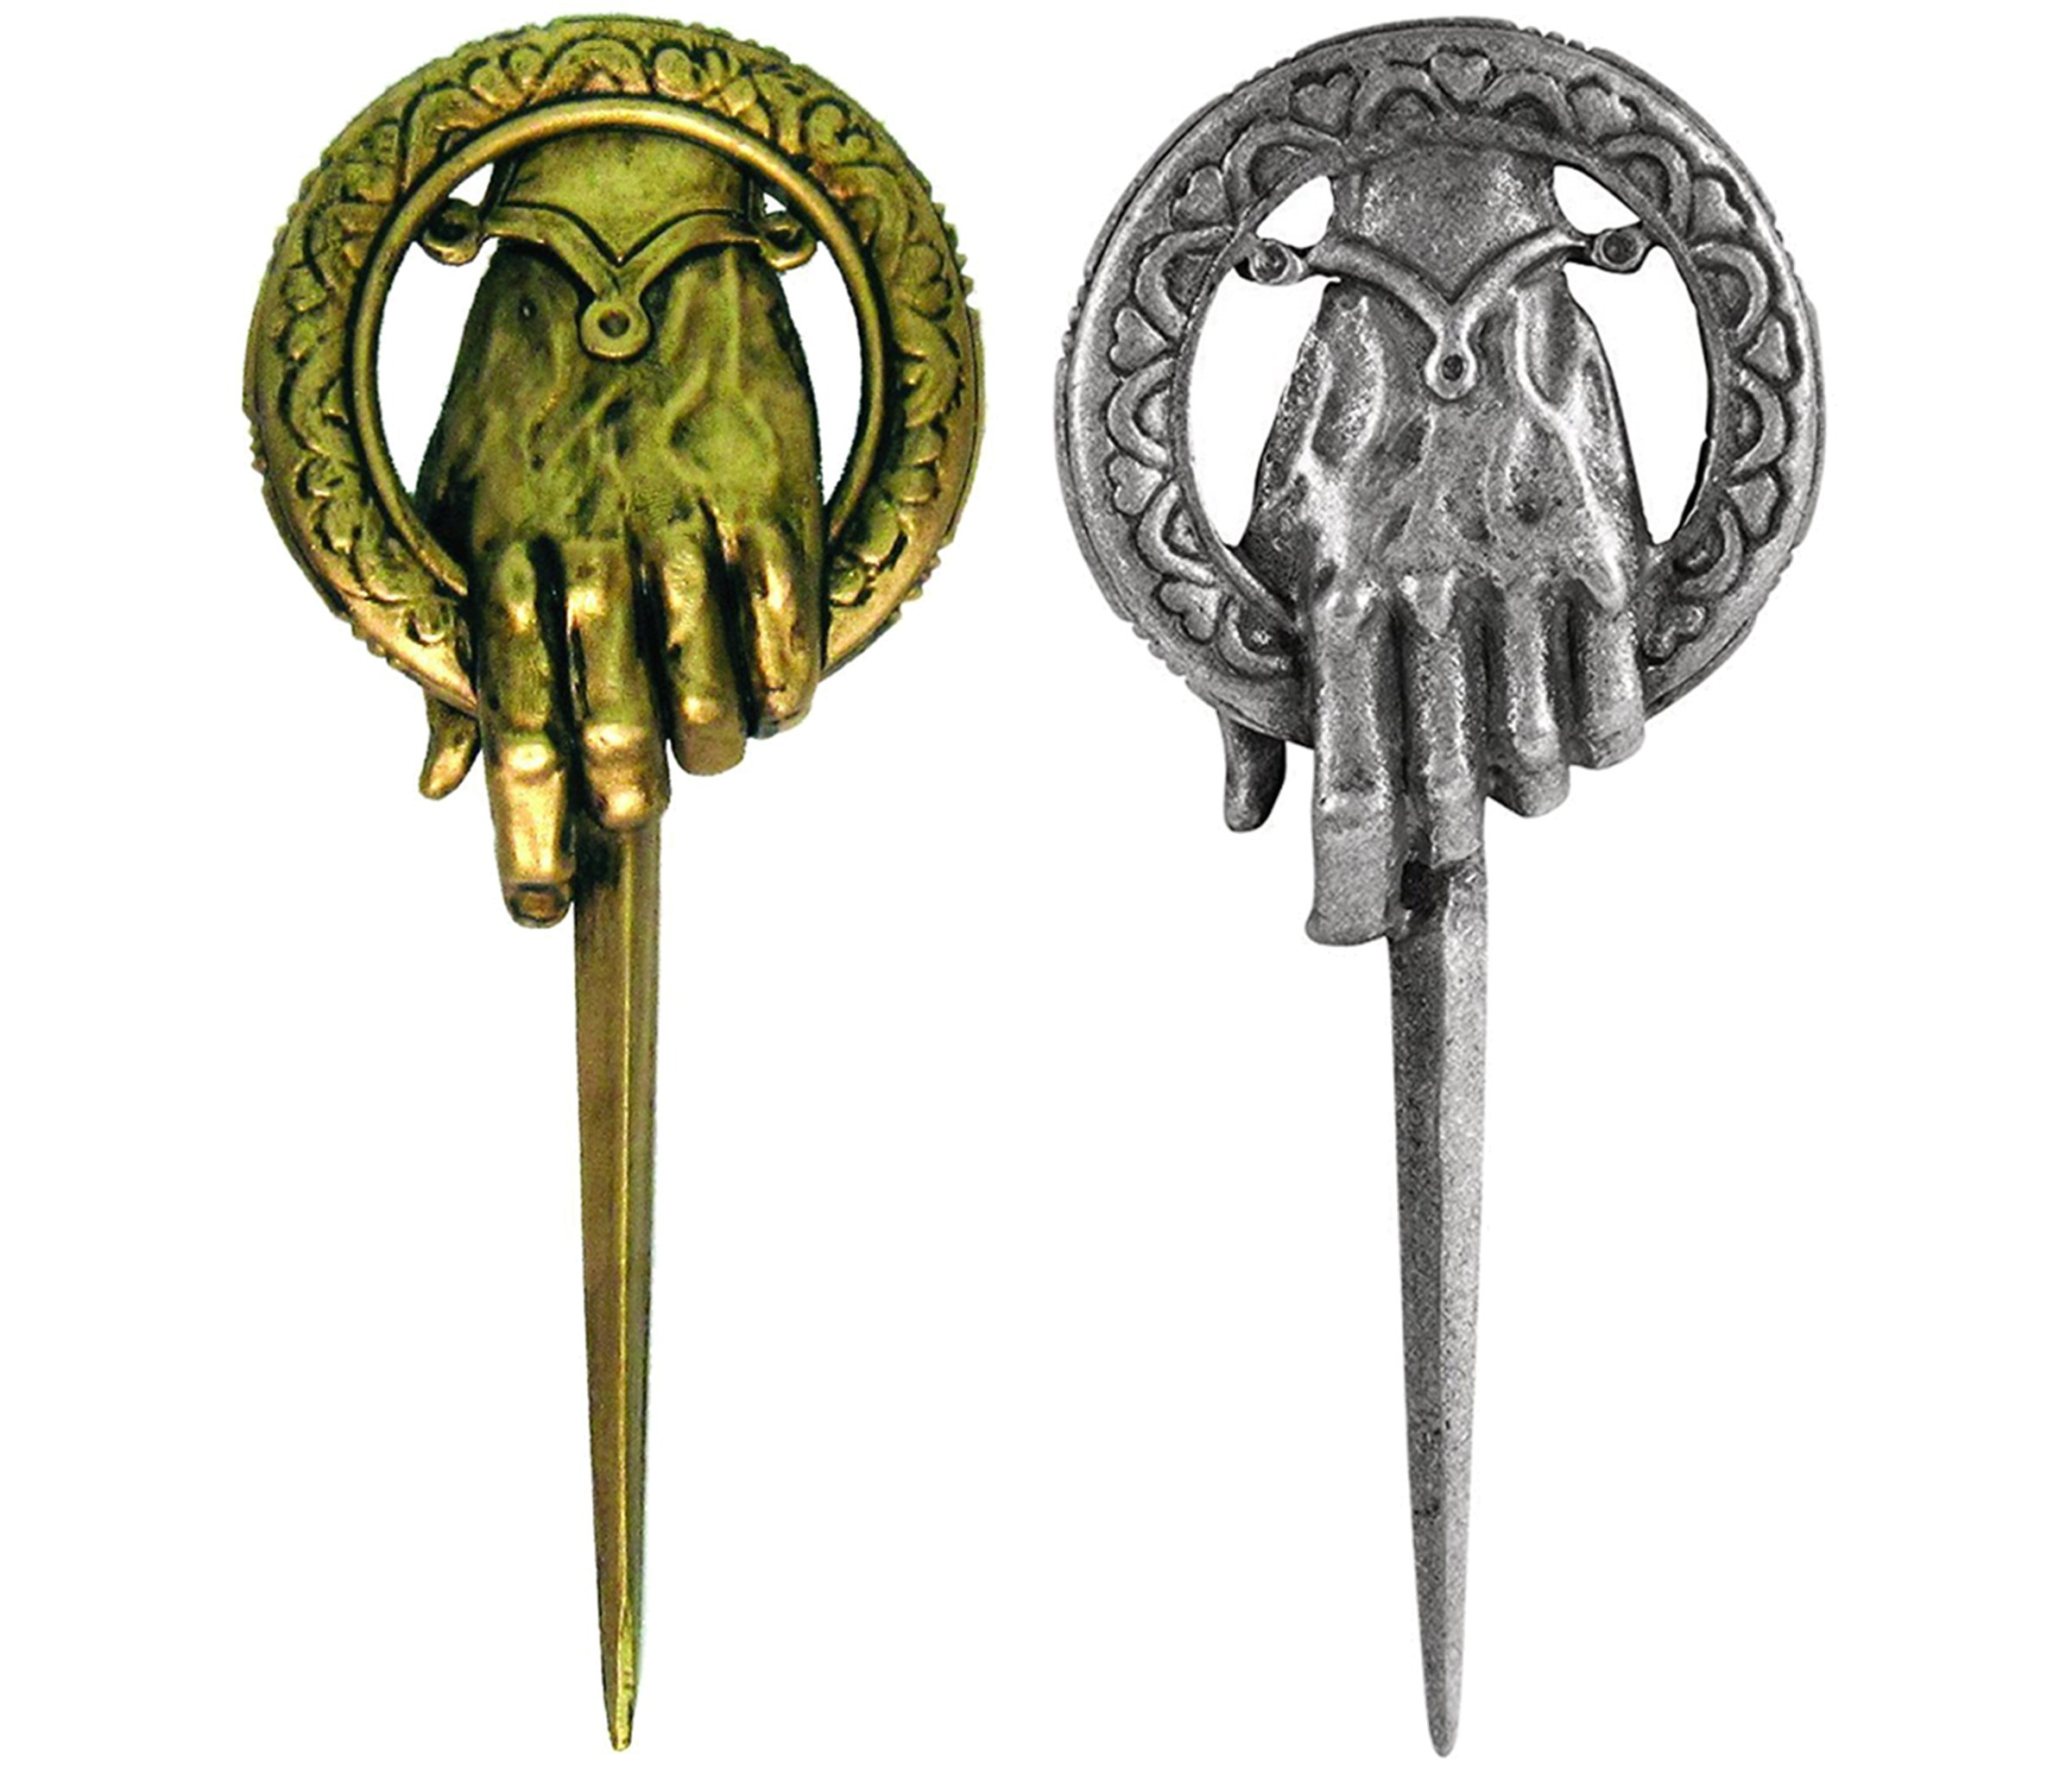 Mozlly Dark Horse Deluxe Game of Thrones Hand of the King and Queen Lapel Pin (2 Items)